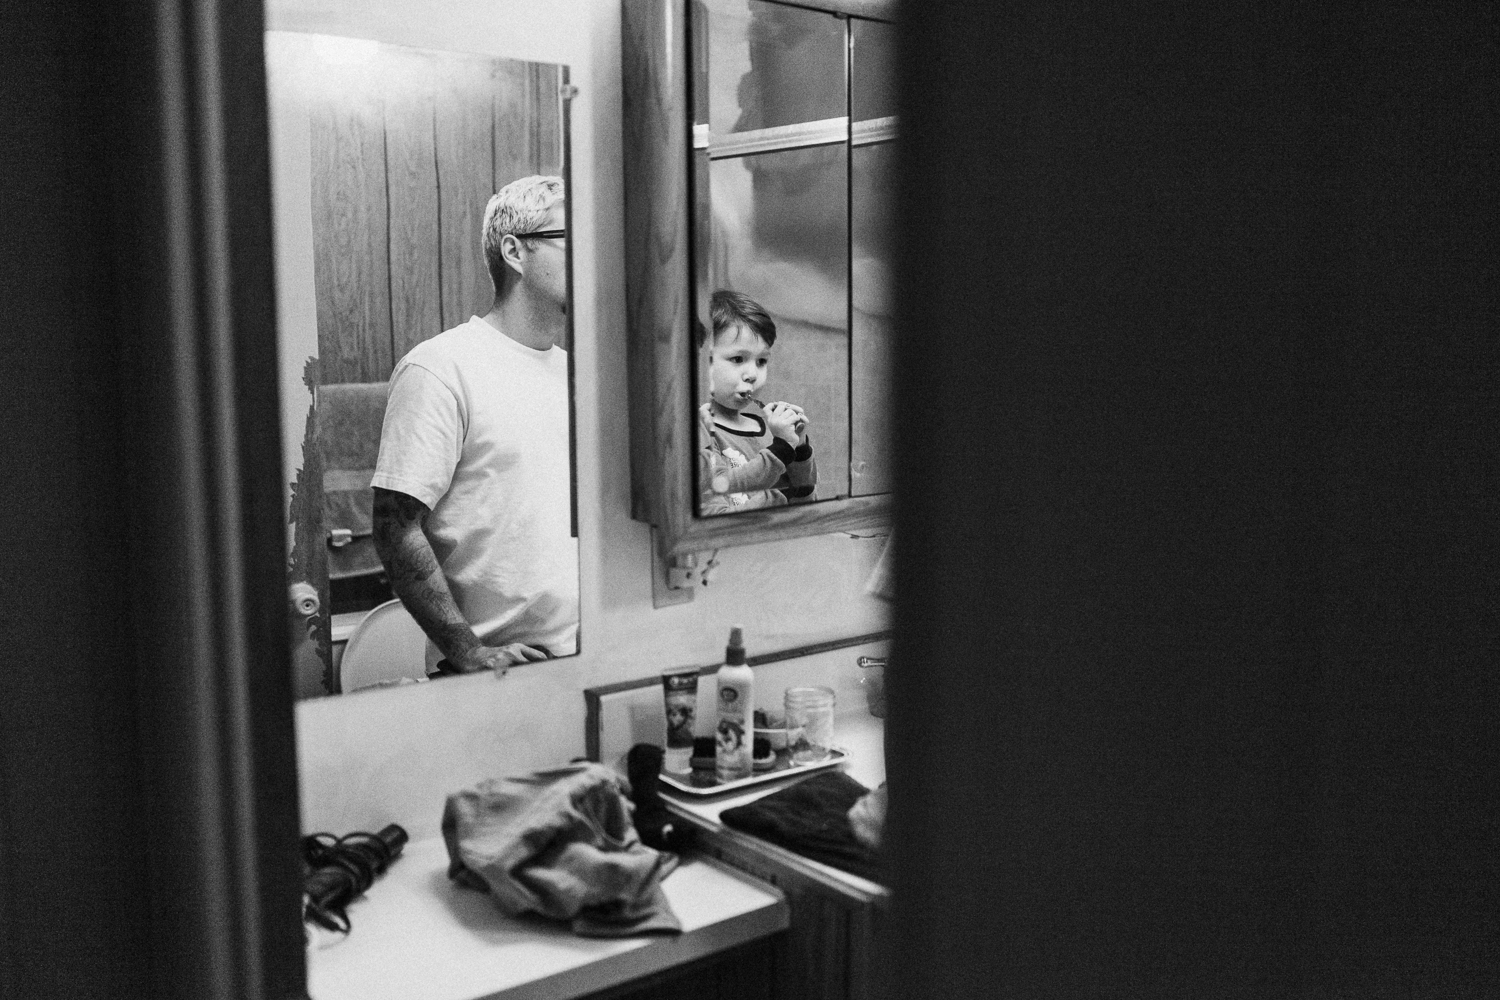 candid-photo-of-father-and-son-brushing-teeth-san-diego-california